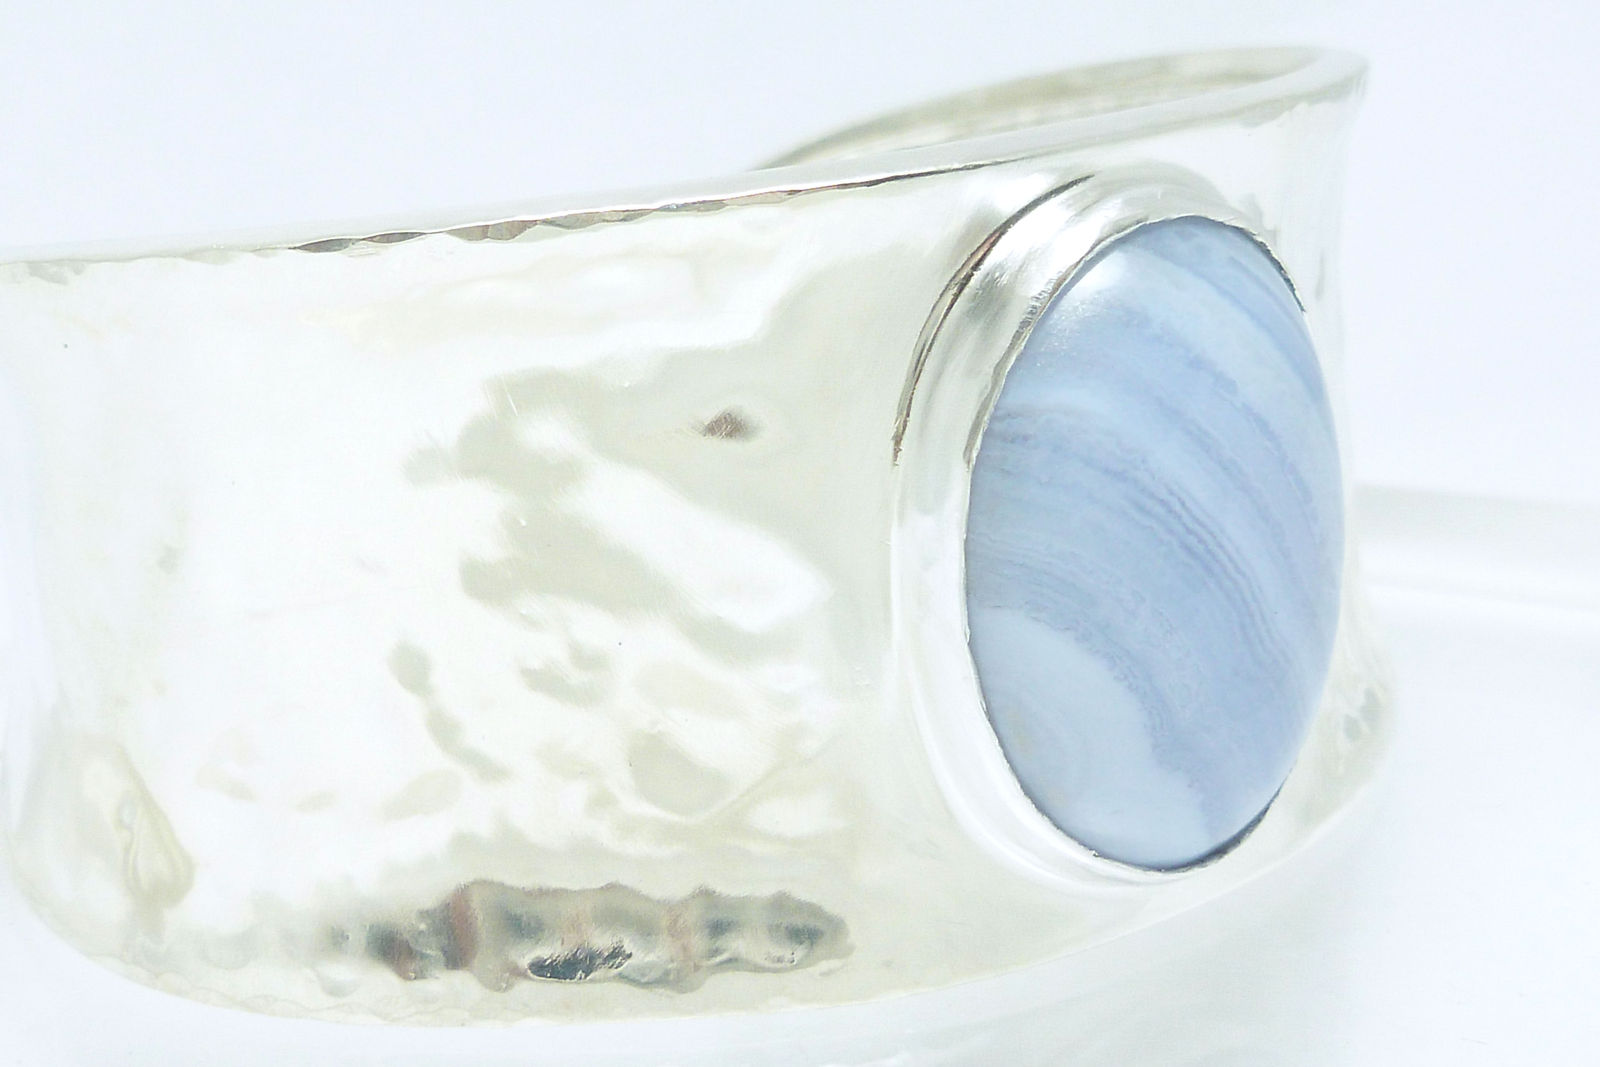 Primary image for Artisan Crafted Hammered Sterling Blue Lace Agate Oval Gemstone Cuff Bracelet